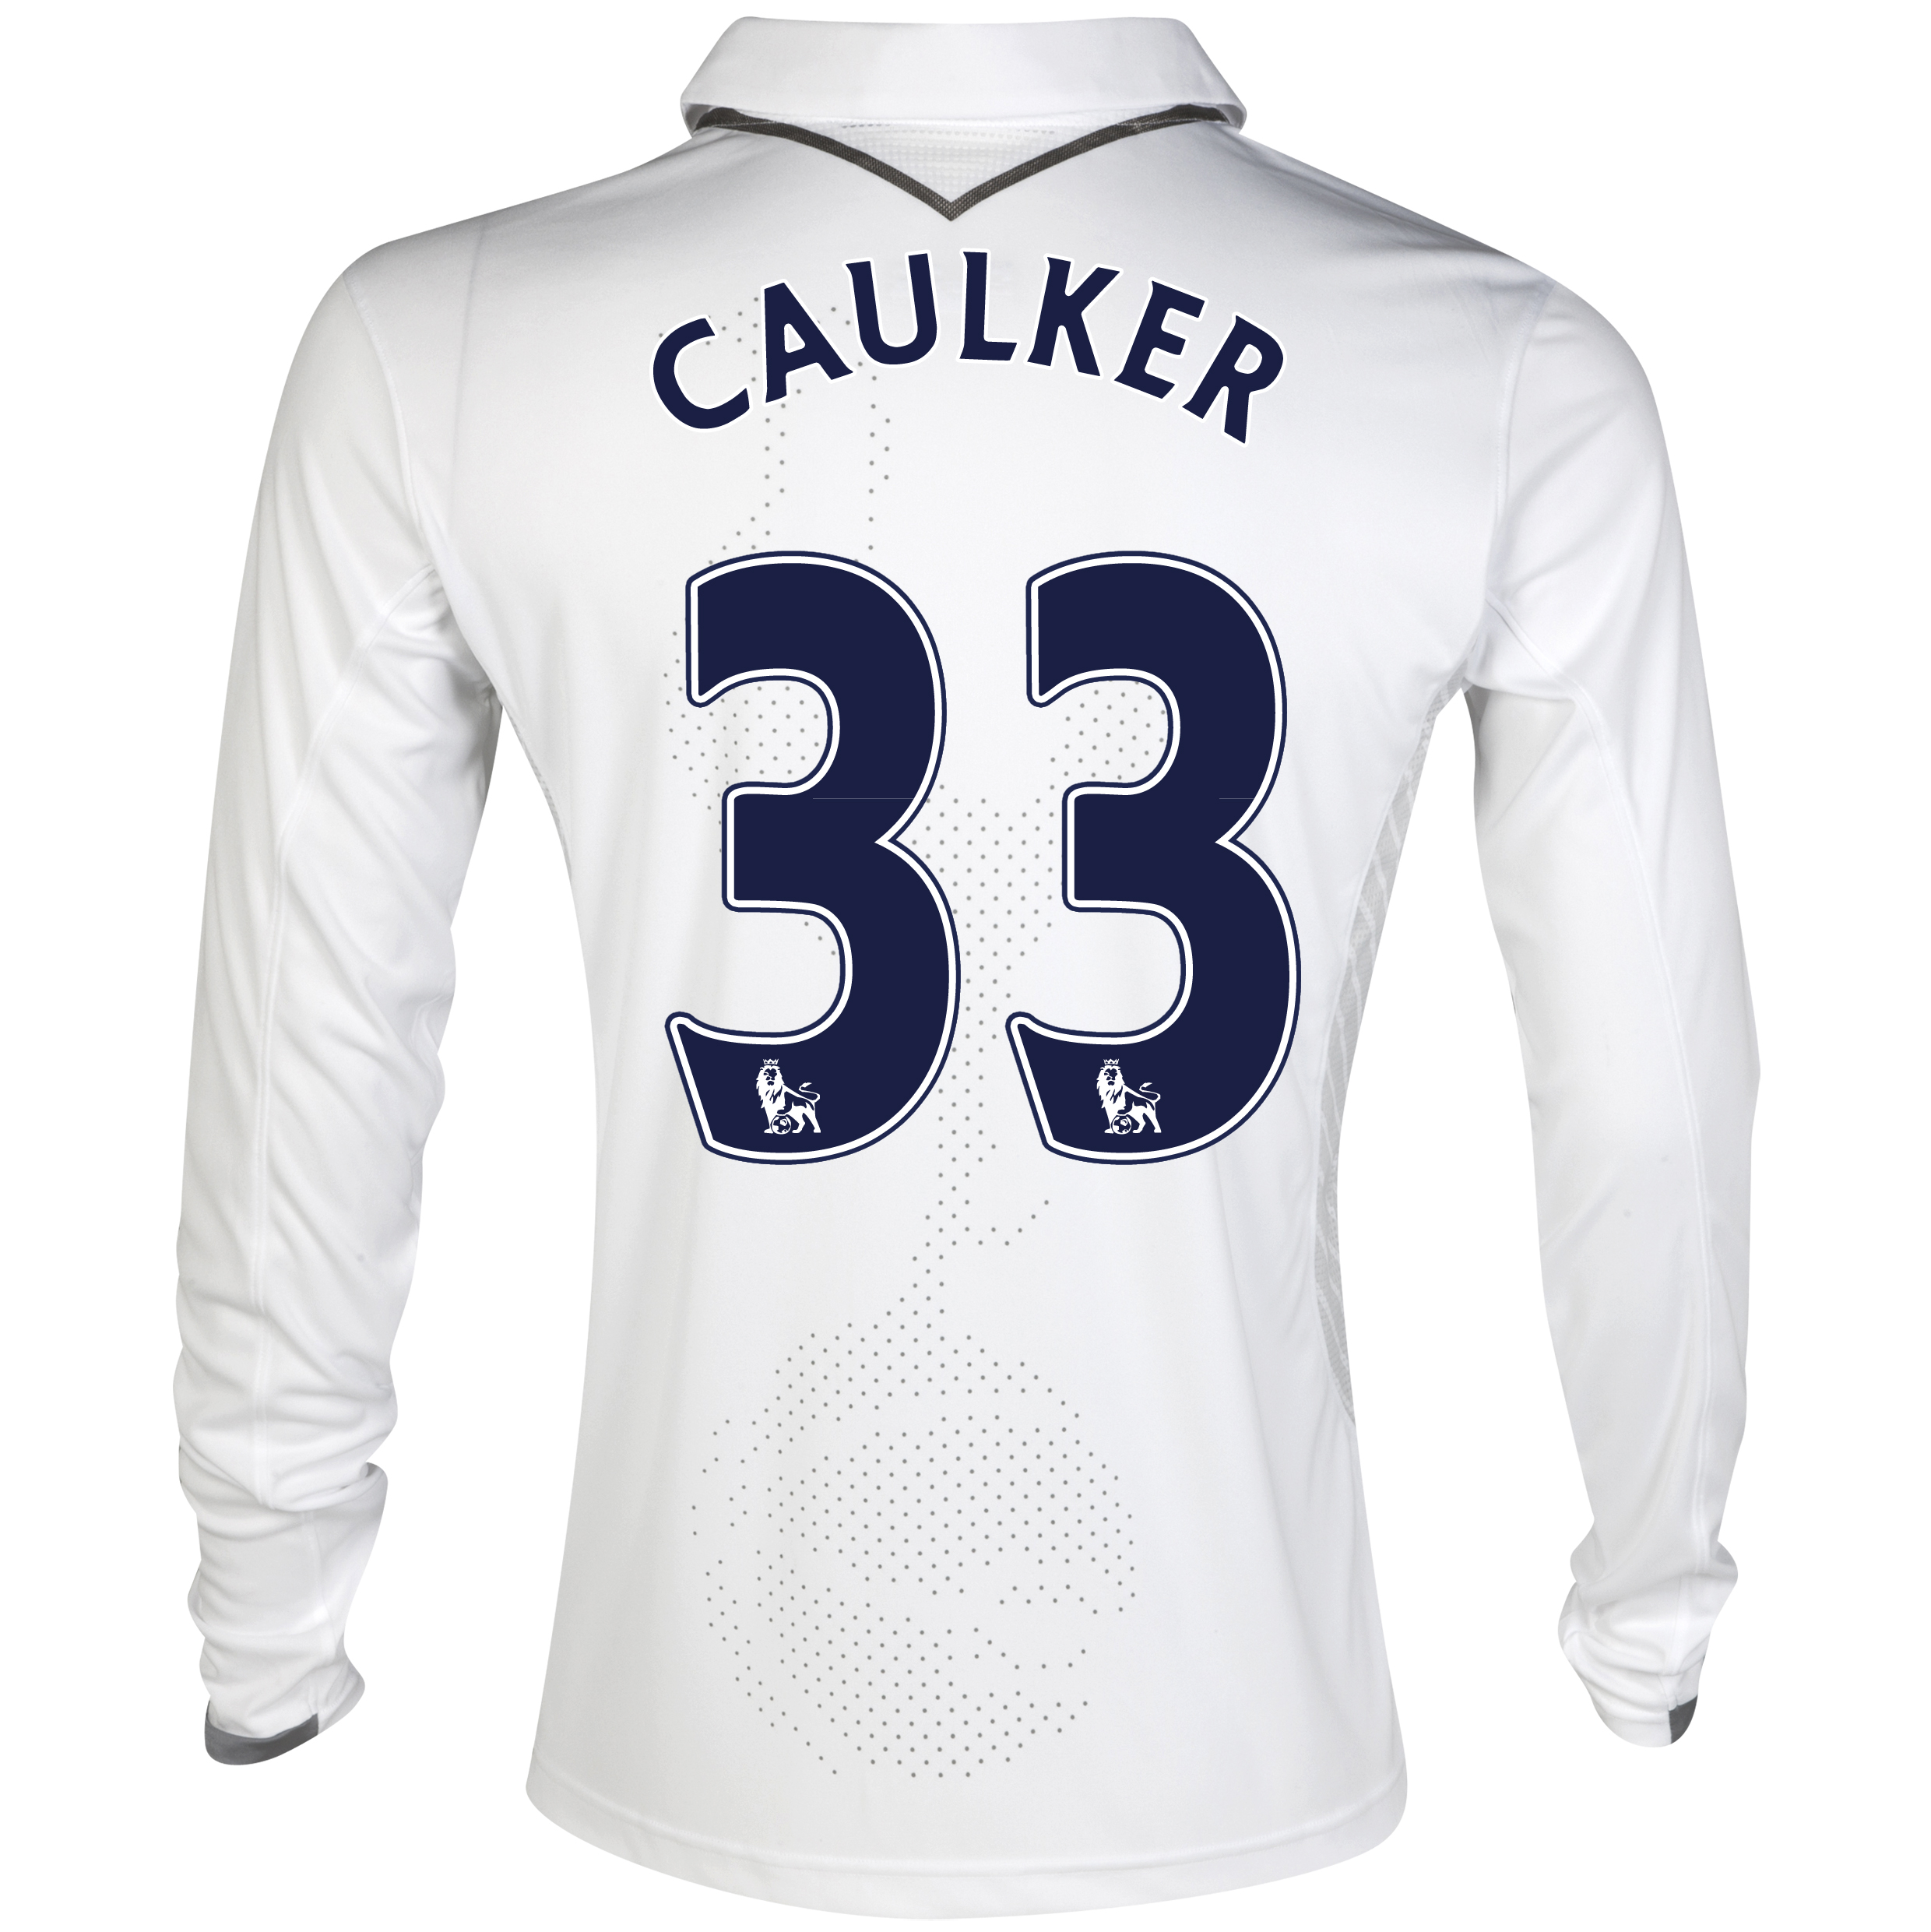 Tottenham Hotspur Home Shirt 2012/13 - Long Sleeve with Caulker 33 printing